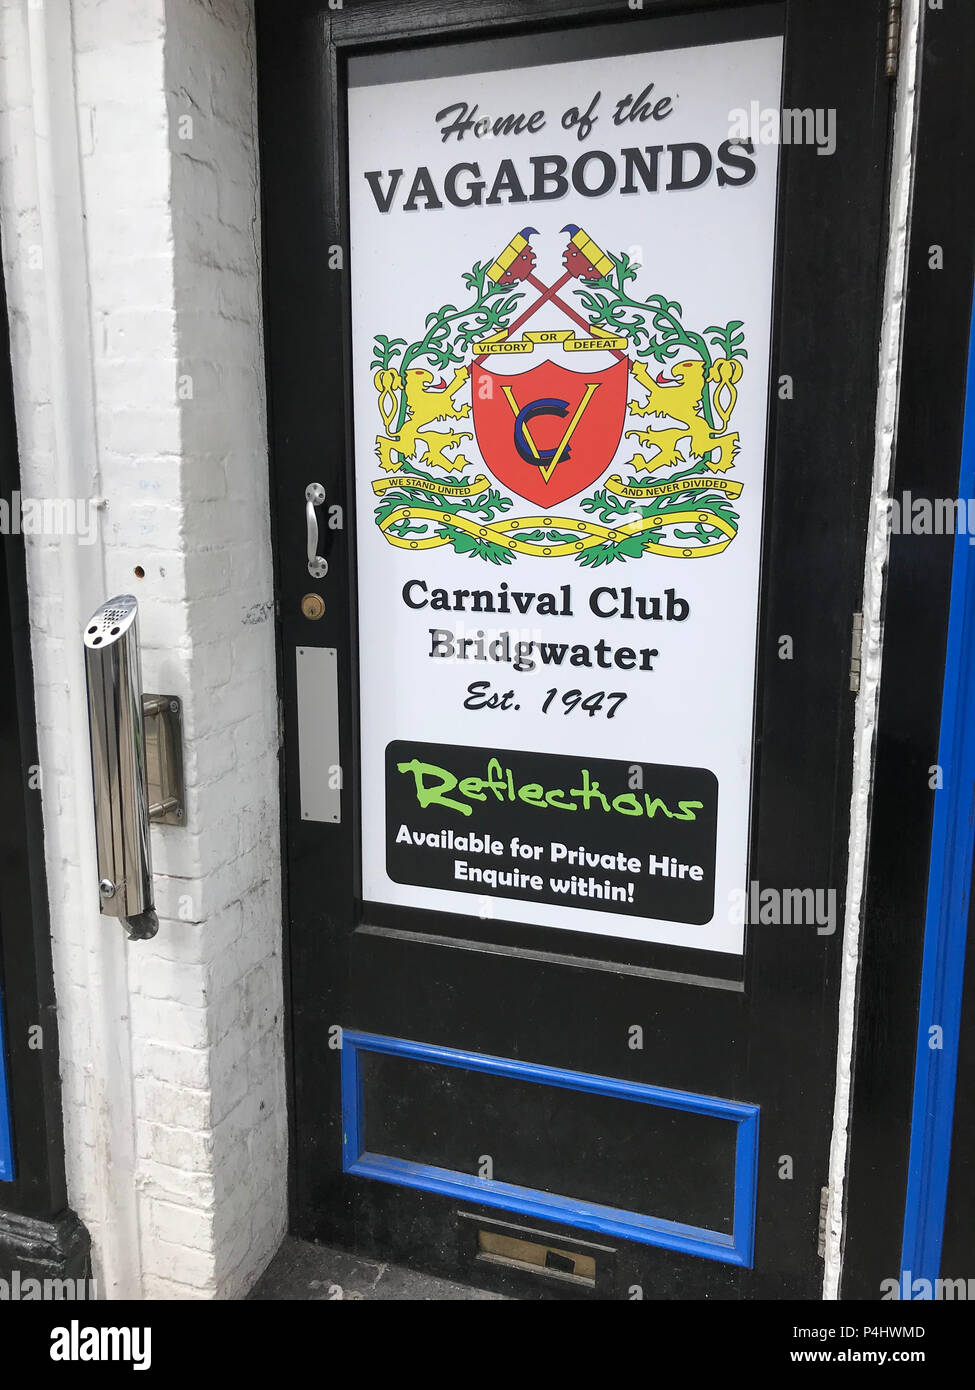 GoTonySmith,@HotpixUK,HotpixUK,Somerset,SDC,town,England,UK,doorway,entrance,TA6 6RE,Home of the Vagabonds Carnival Club,Reflections Club,door,Home of the,West Country Carnival Circuits,squibbing